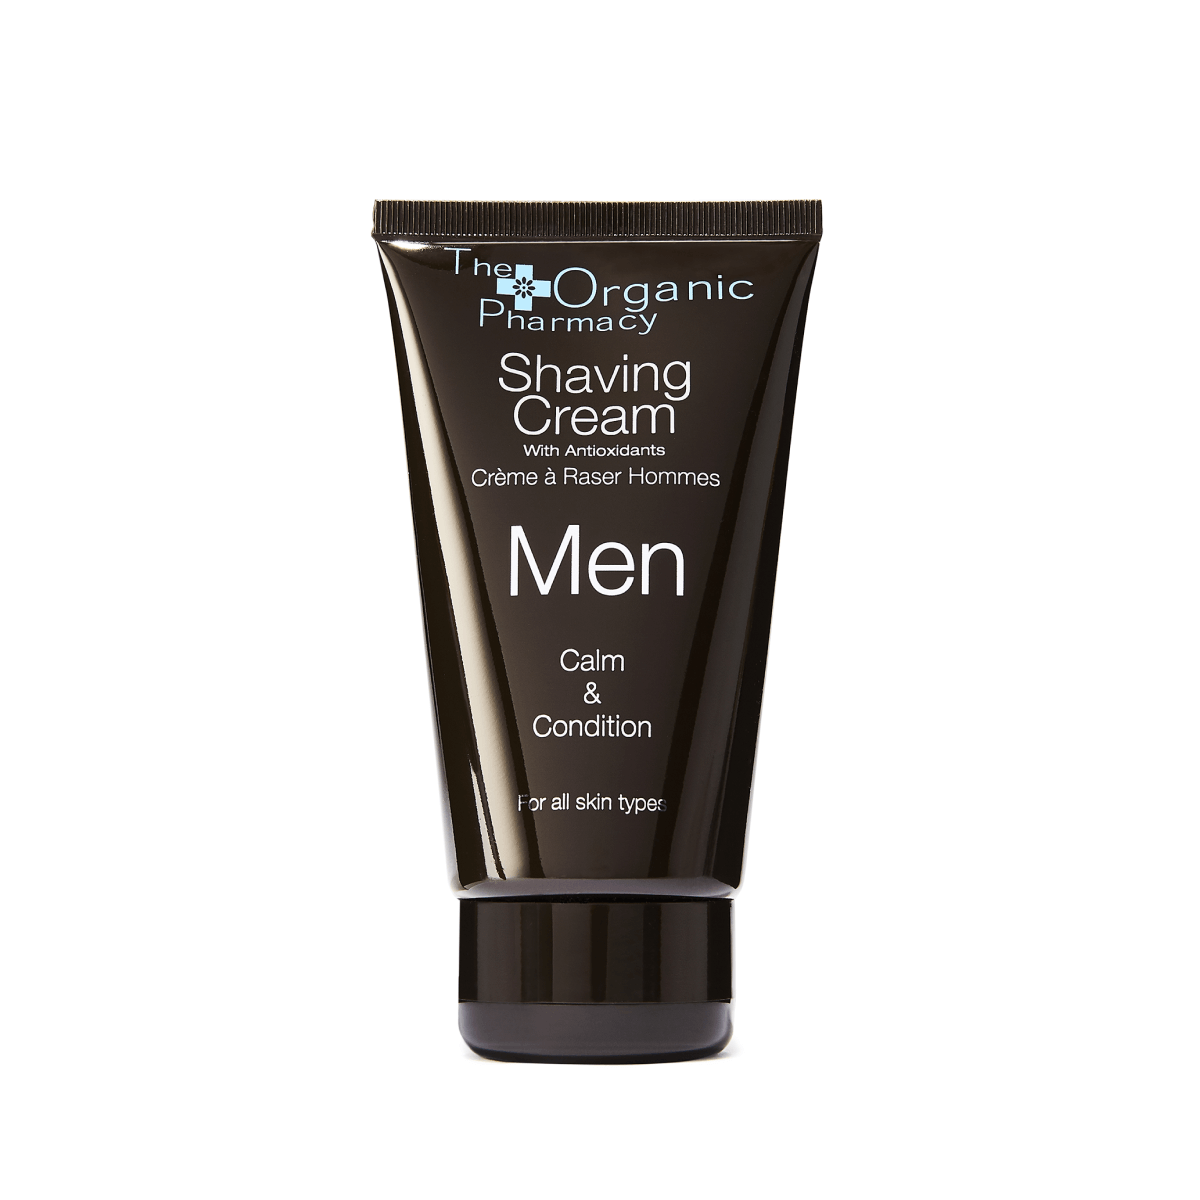 The Organic Pharmacy Men's Shaving Cream